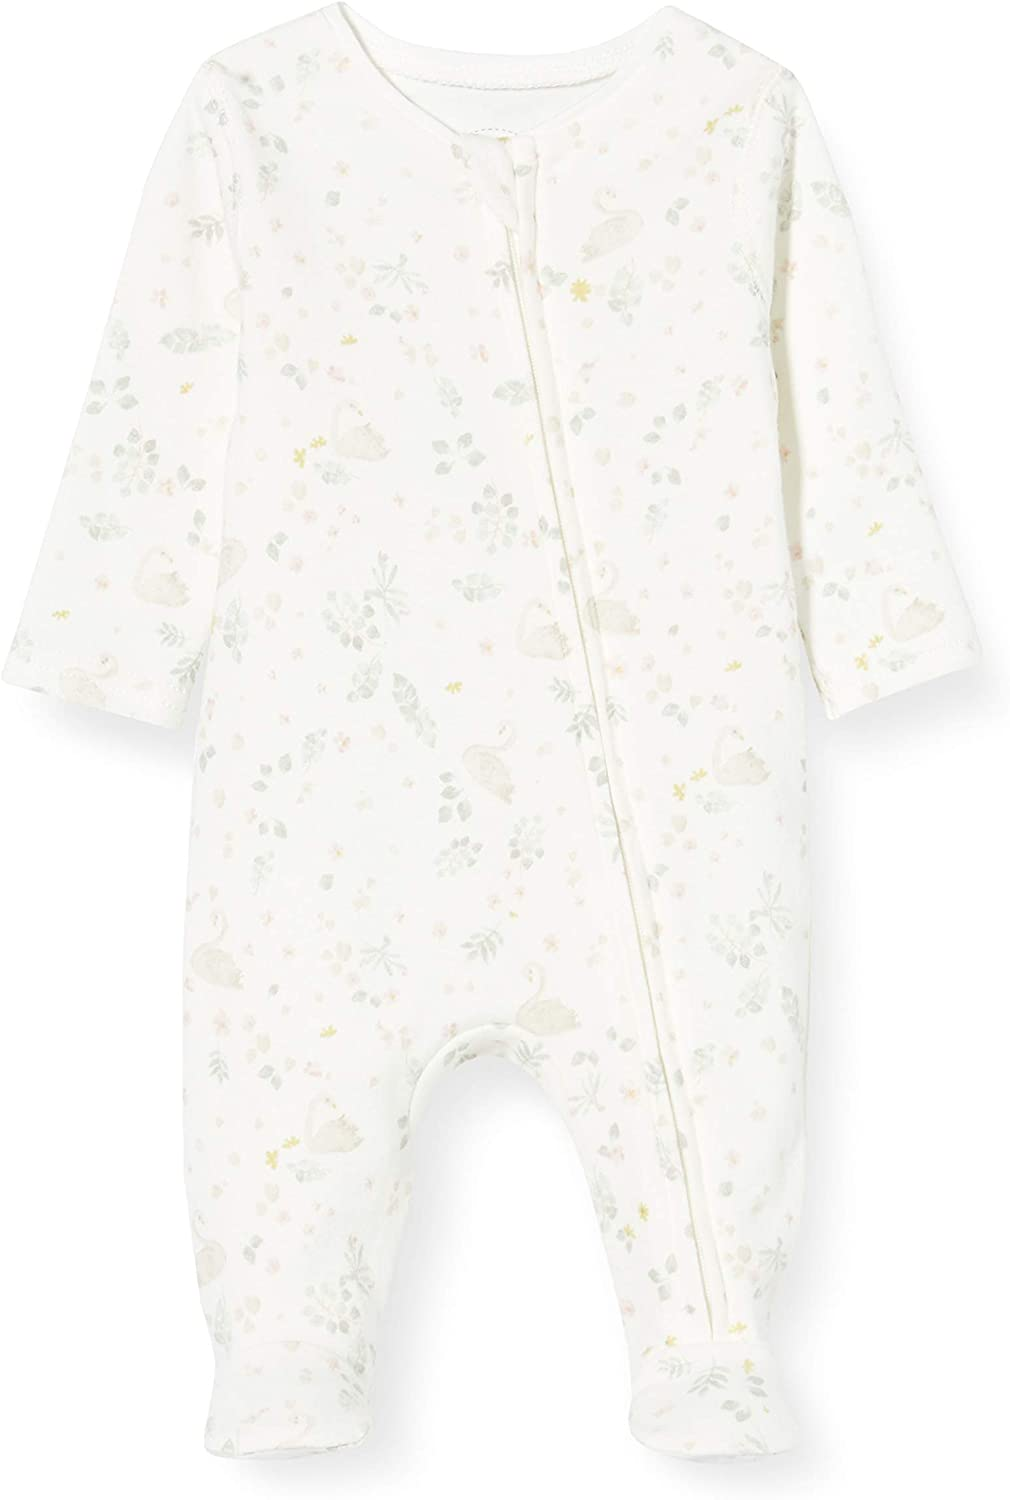 Mamas /& Papas Baby Girls Floral Zip All-in-one Romper